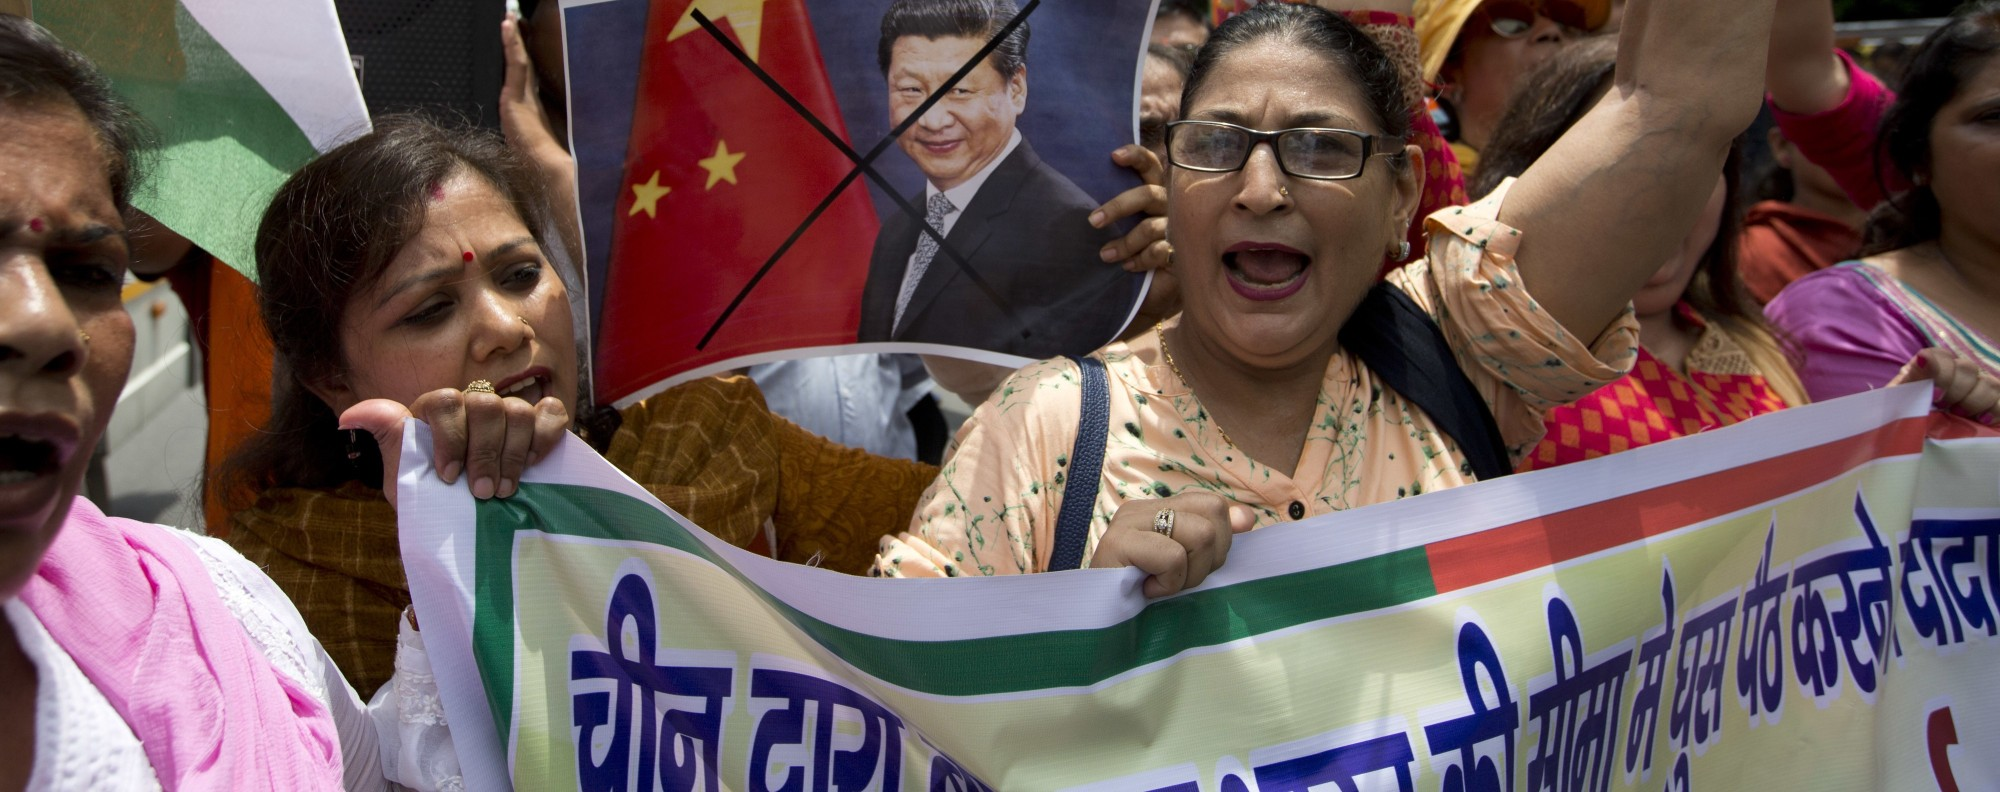 Indians protest against Chinese products. Photo: AP